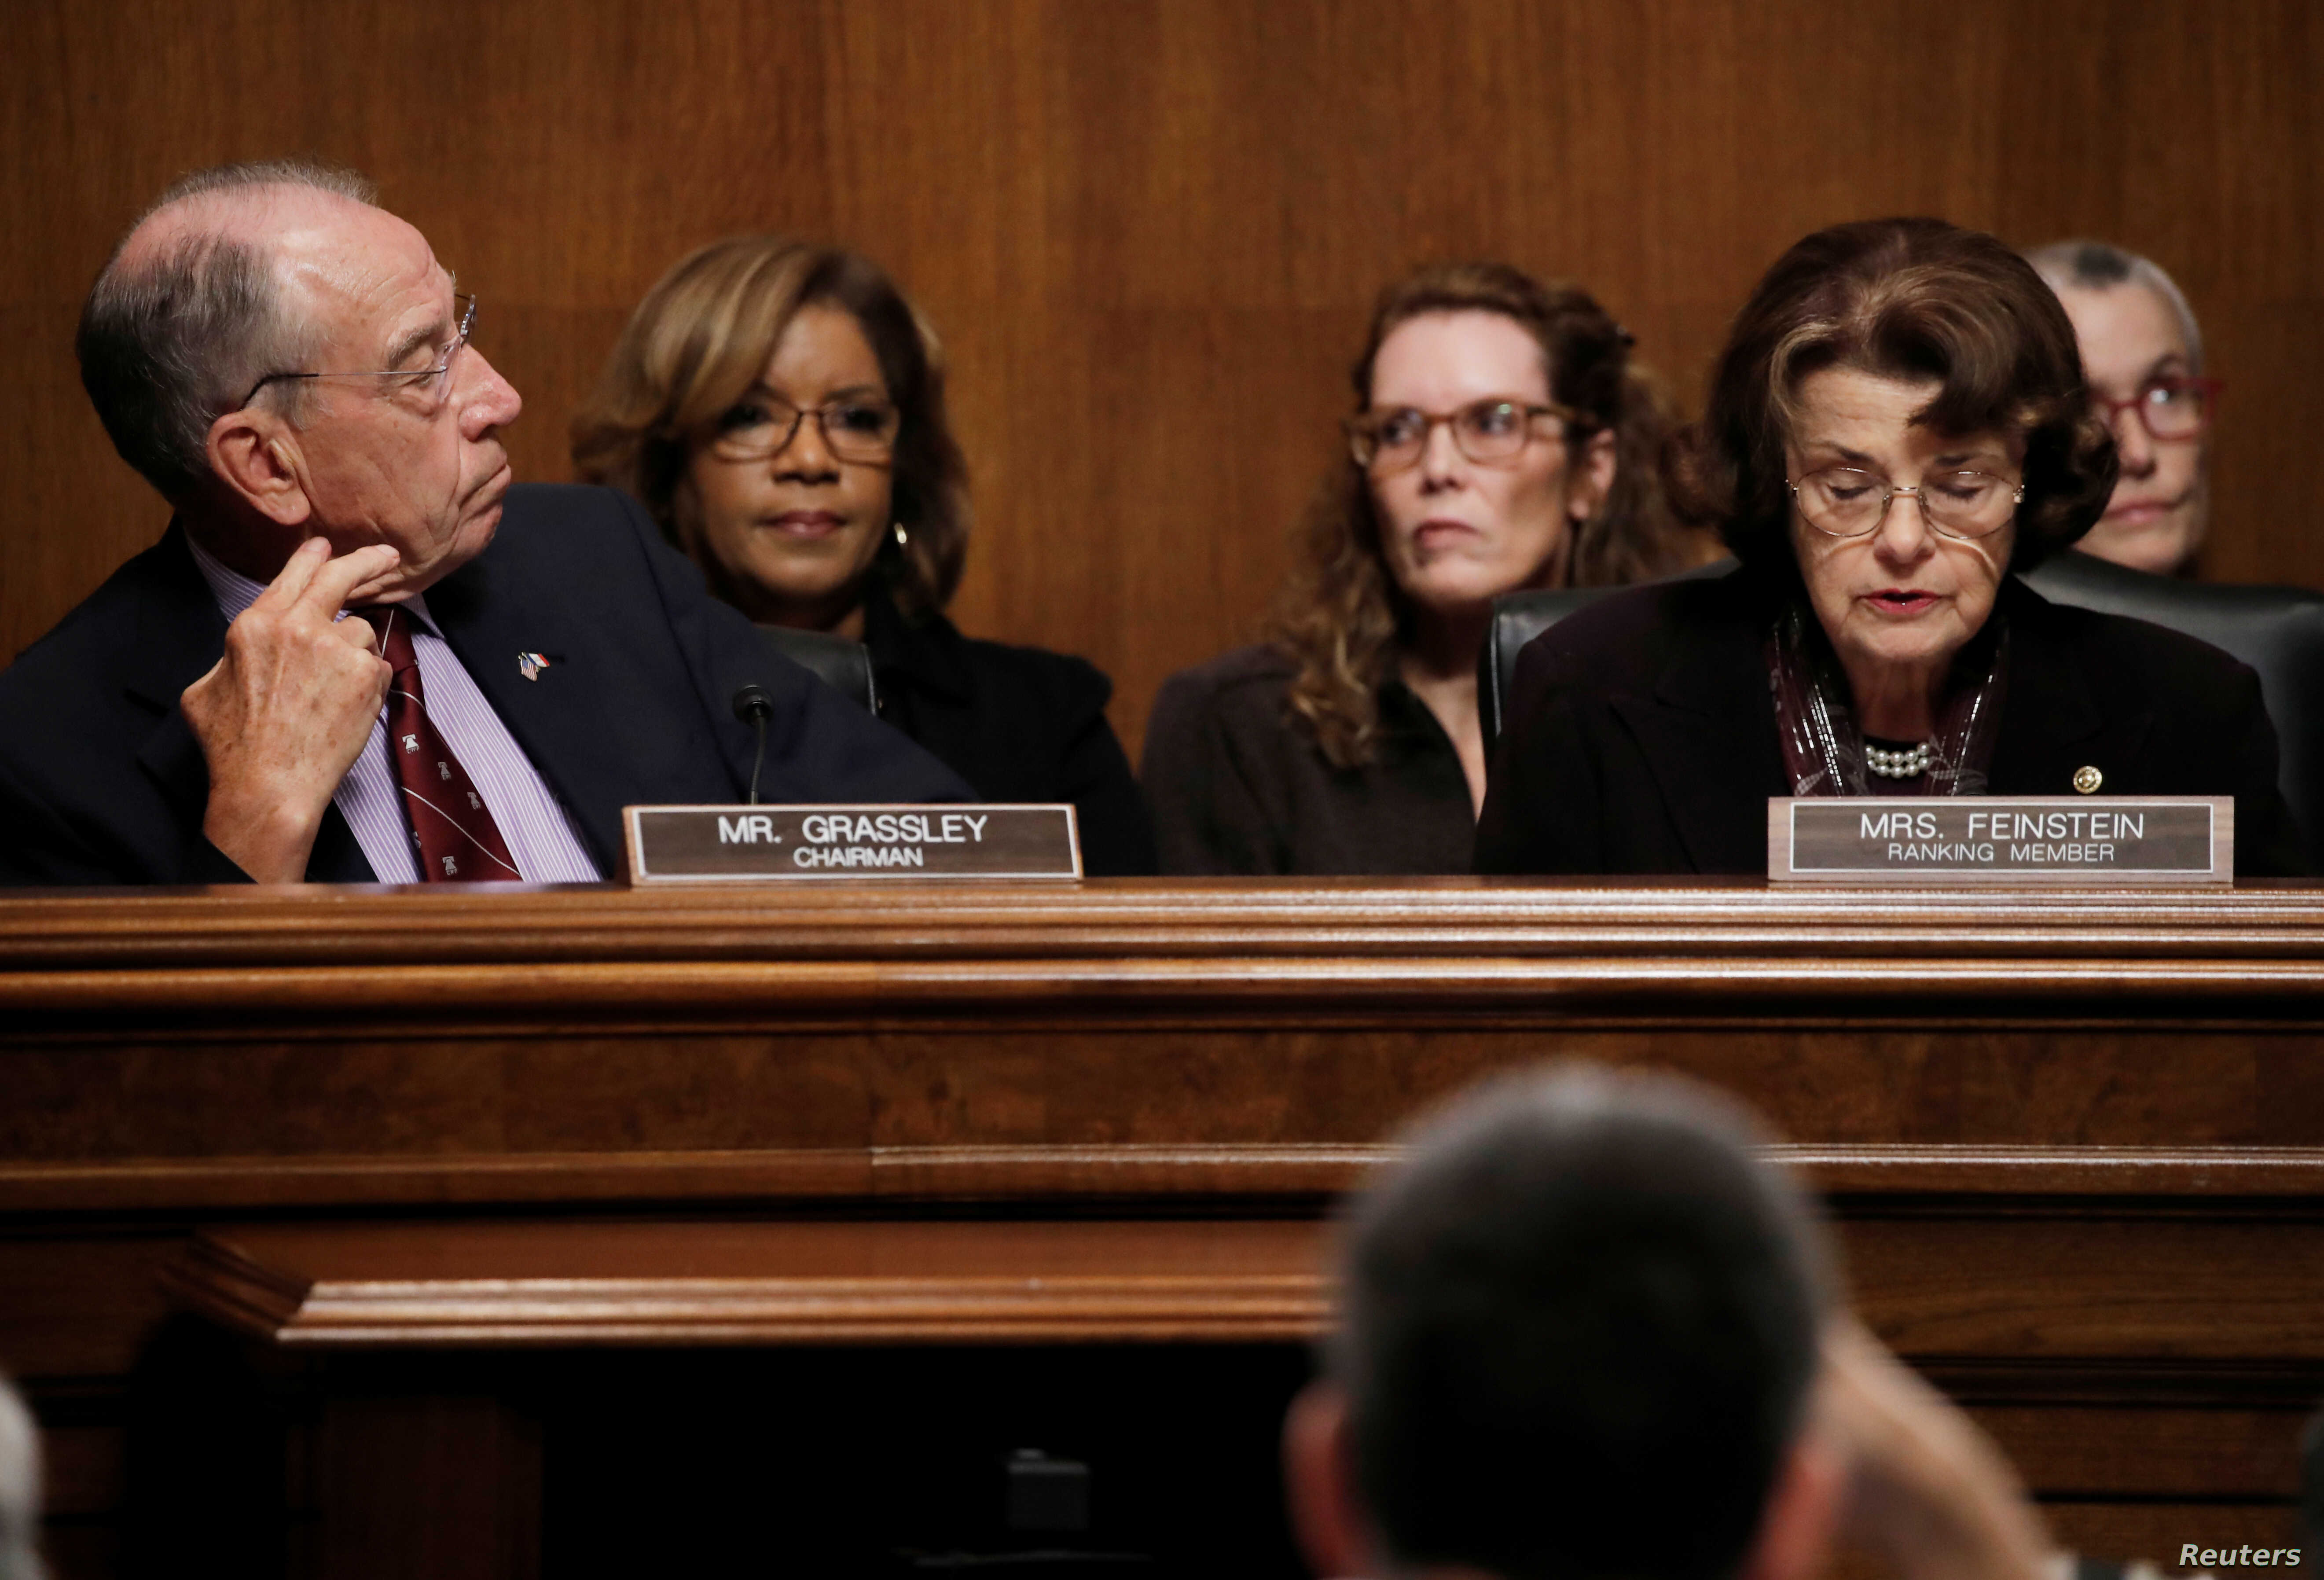 Senate Judiciary Committee Chairman Chuck Grassley (R-IA) looks over at ranking member Sen. Dianne Feinstein (D-CA) as members of the Senate Judiciary Committee meet to vote on the nomination of judge Brett Kavanaugh to be a U.S. Supreme Court associ...